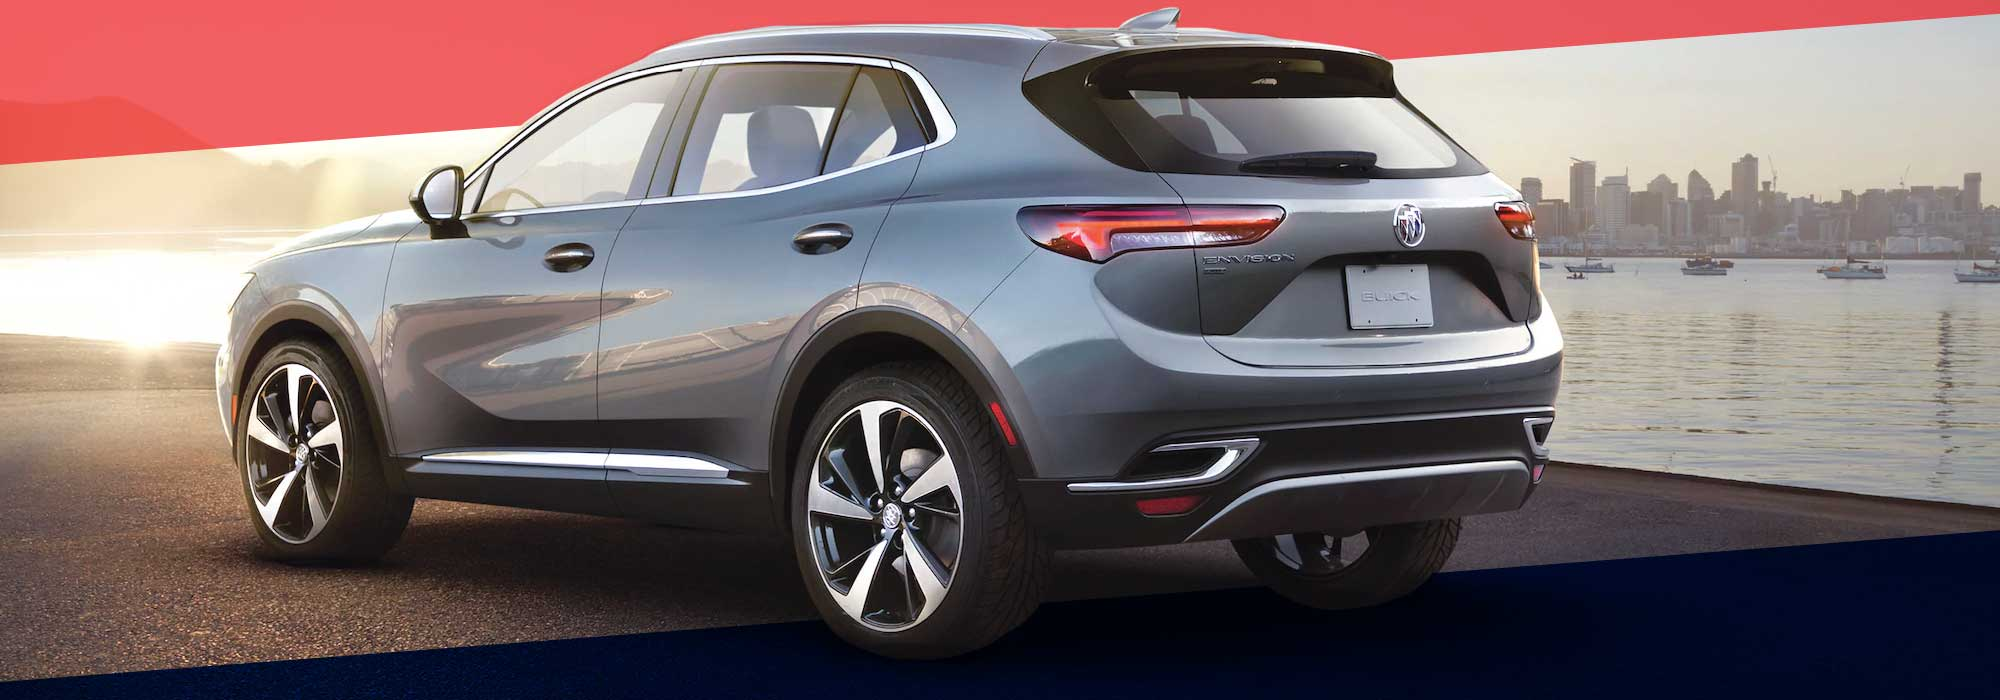 2021 Buick Envision for sale